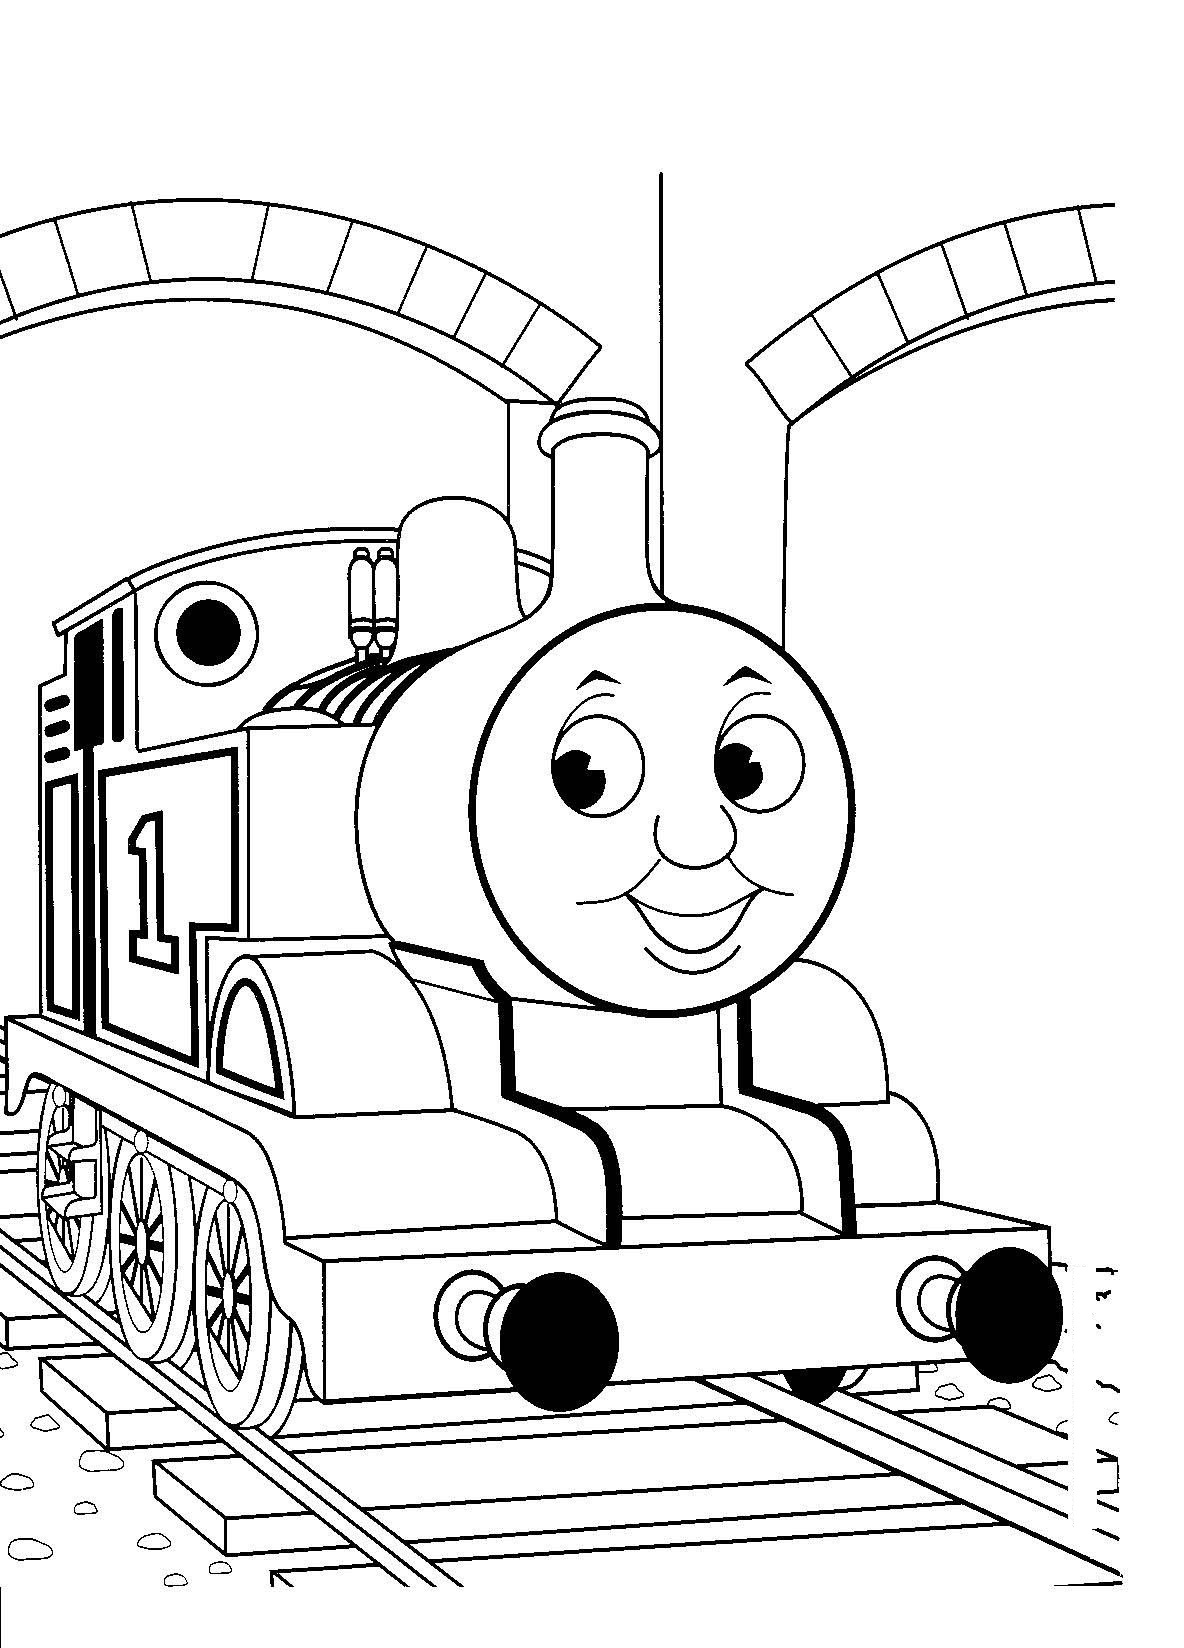 free printable train coloring pages for kids - Free Coloring Page Printables